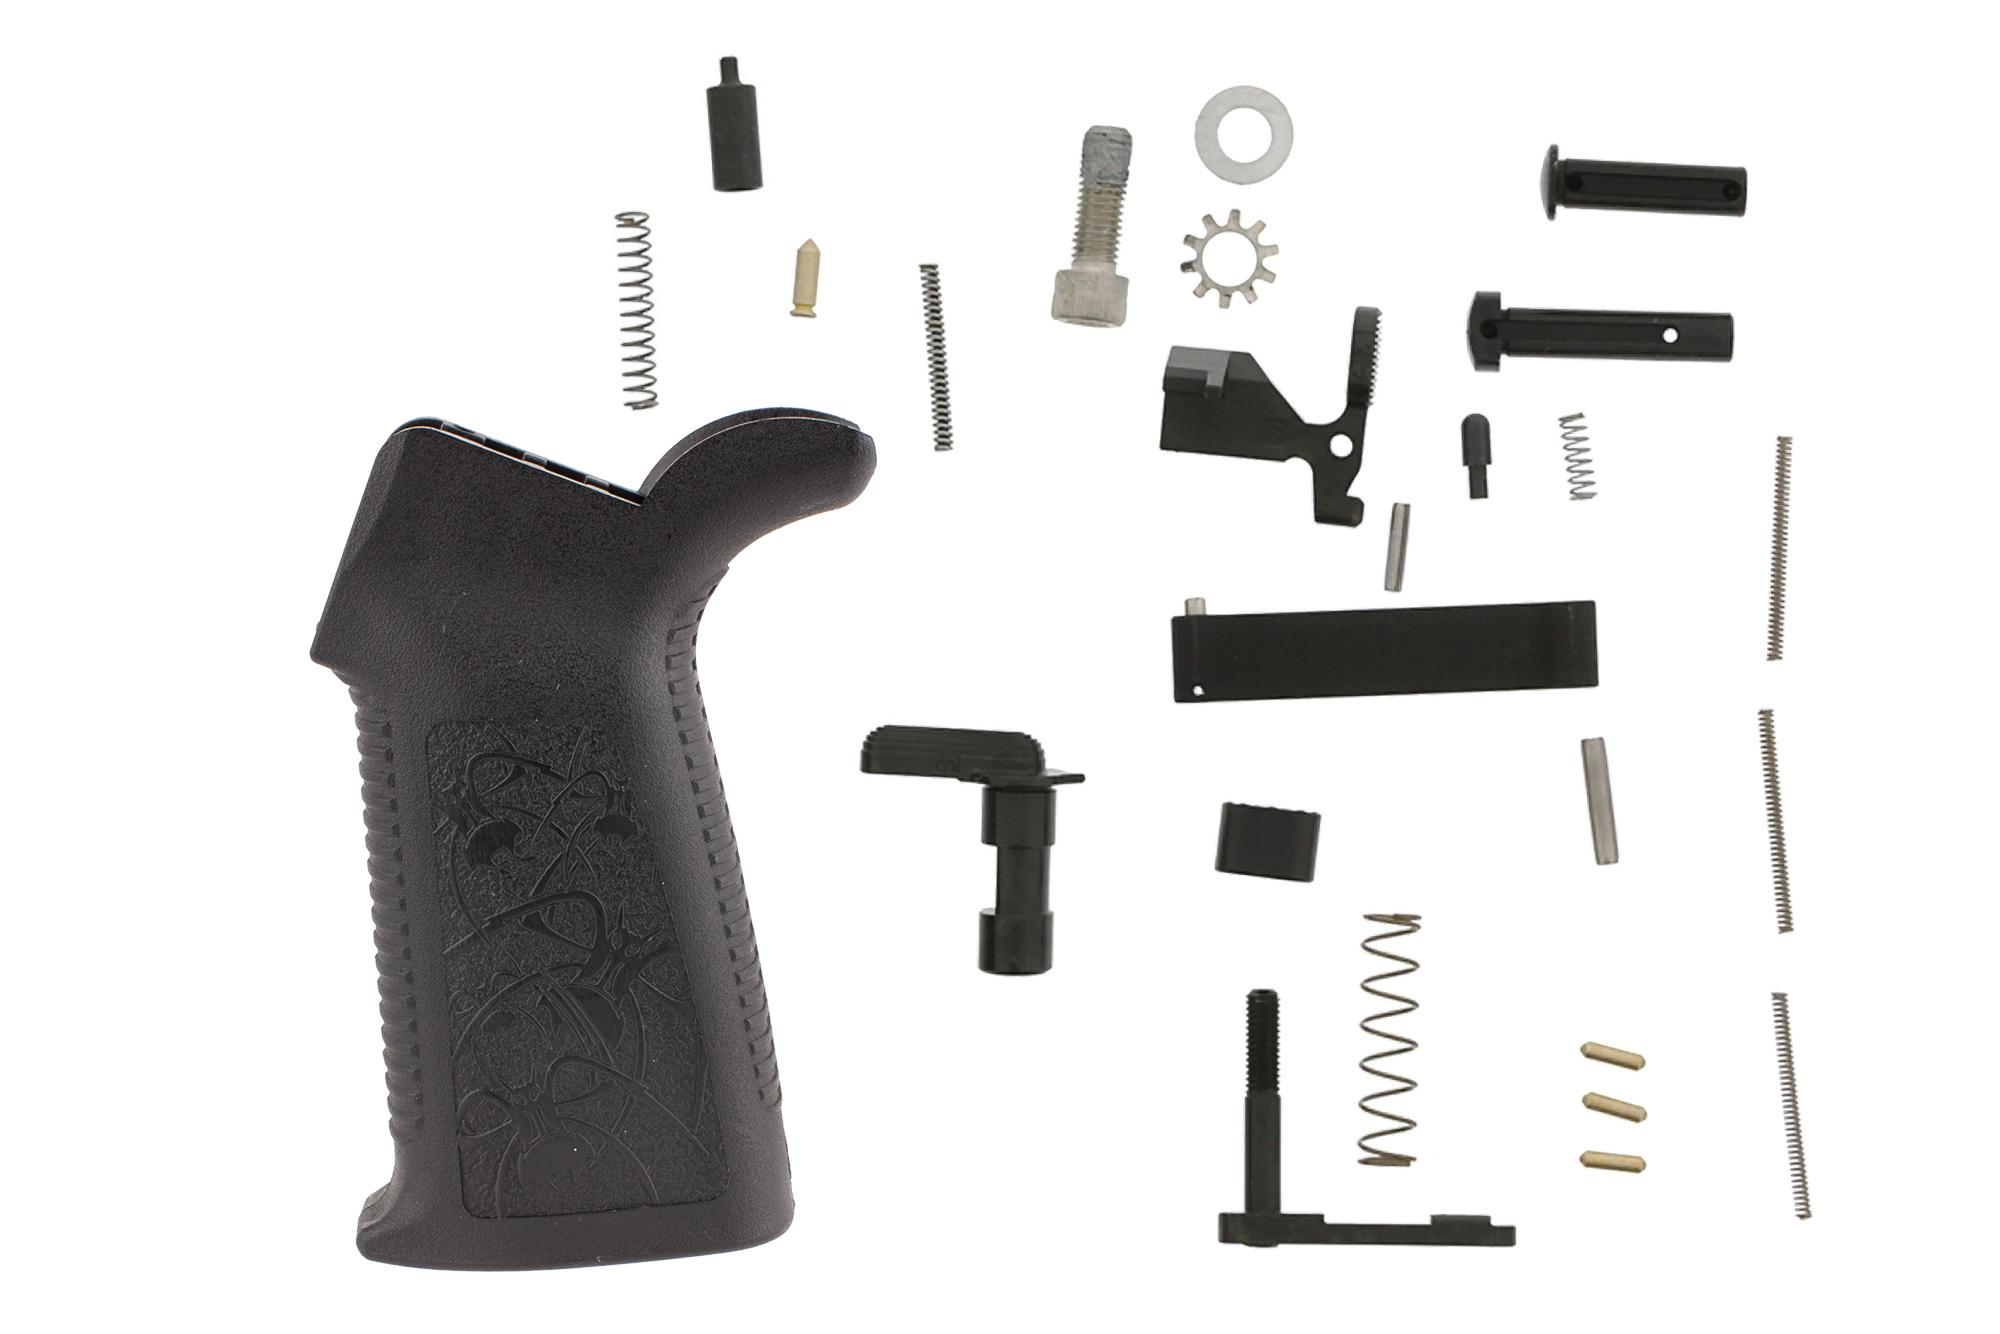 The Spikes Tactical Lower Parts Kit no trigger is an affordable way to finish your AR15 lower receiver